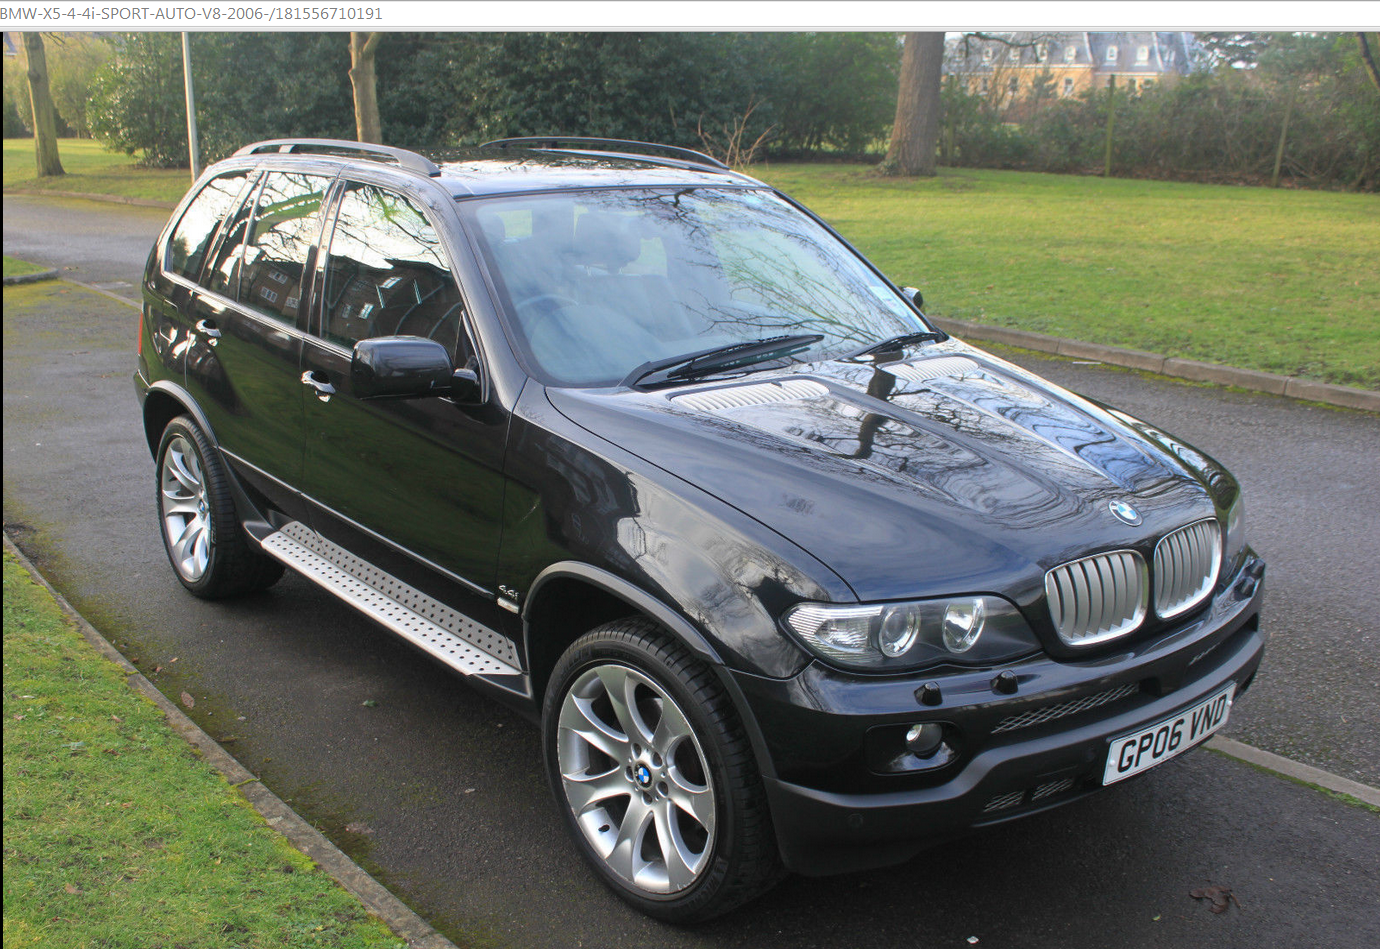 scam bmw x5 sport auto v8 2006 gp06vnd black gp06 vnd ebay fraud 13 oct 14. Black Bedroom Furniture Sets. Home Design Ideas